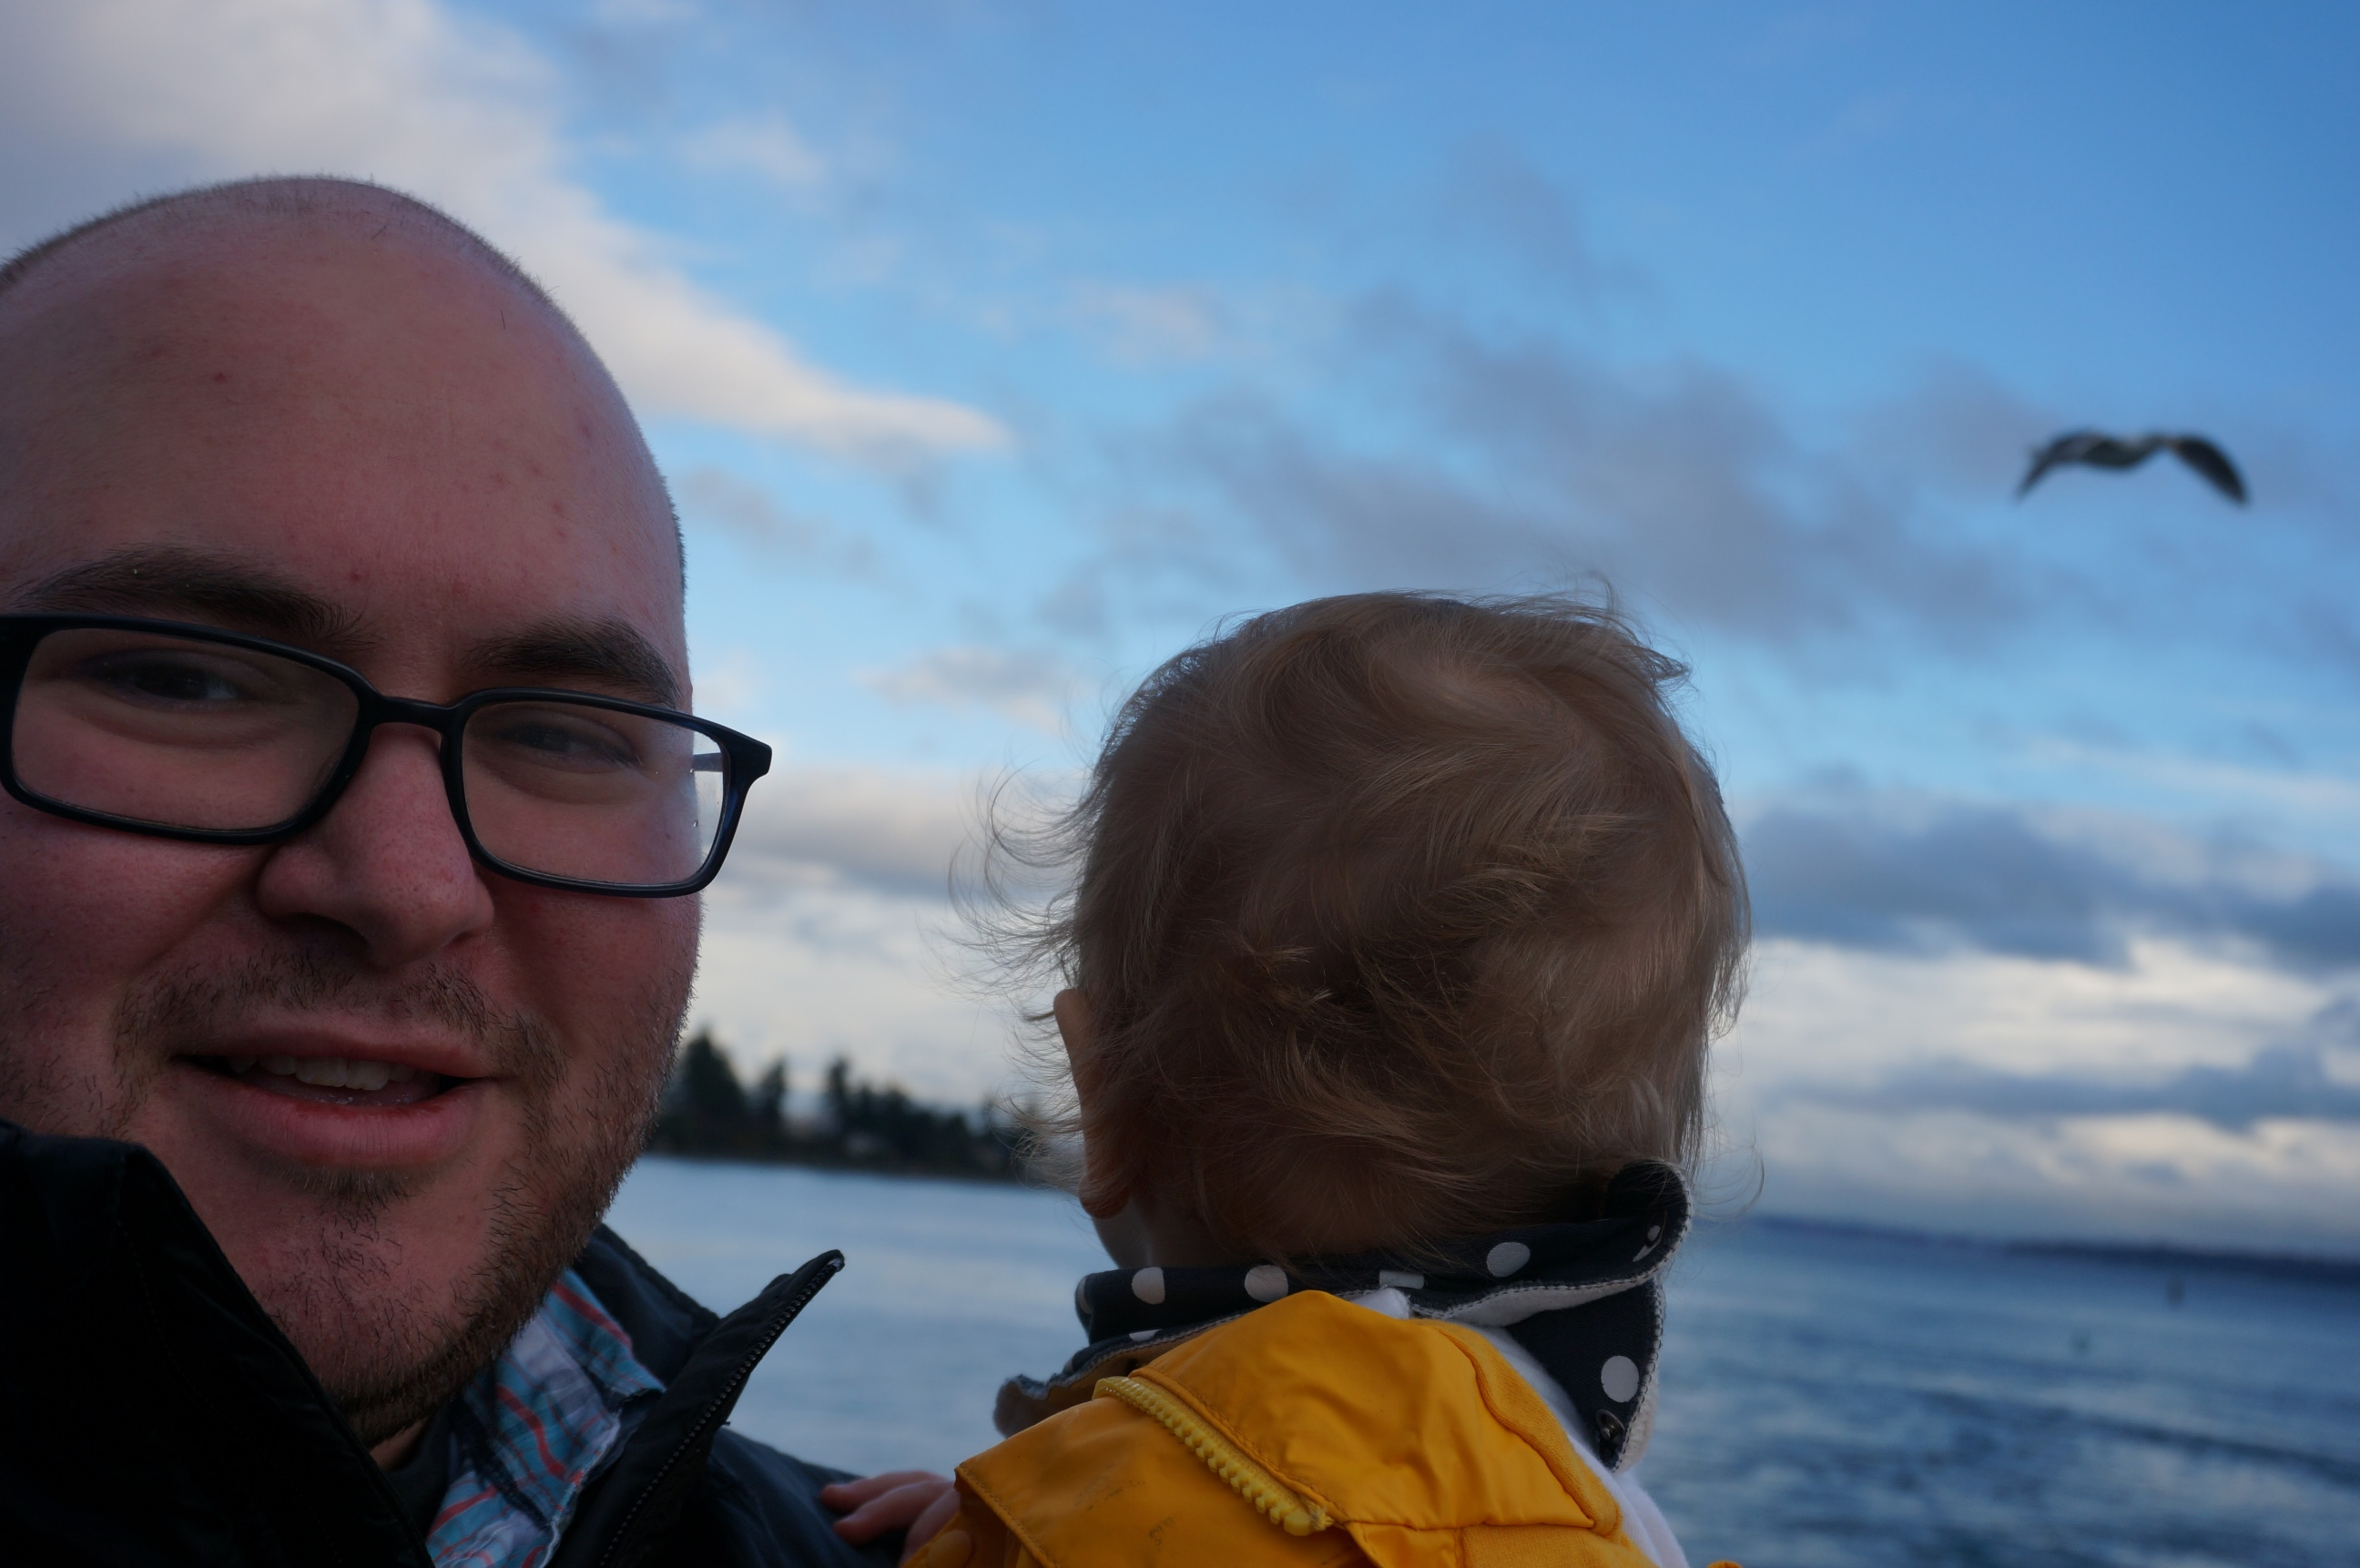 Elias Kass with his child. Kass is a Seattle naturopathic pediatric primary care provider who advocates for parents to vaccinate their children.